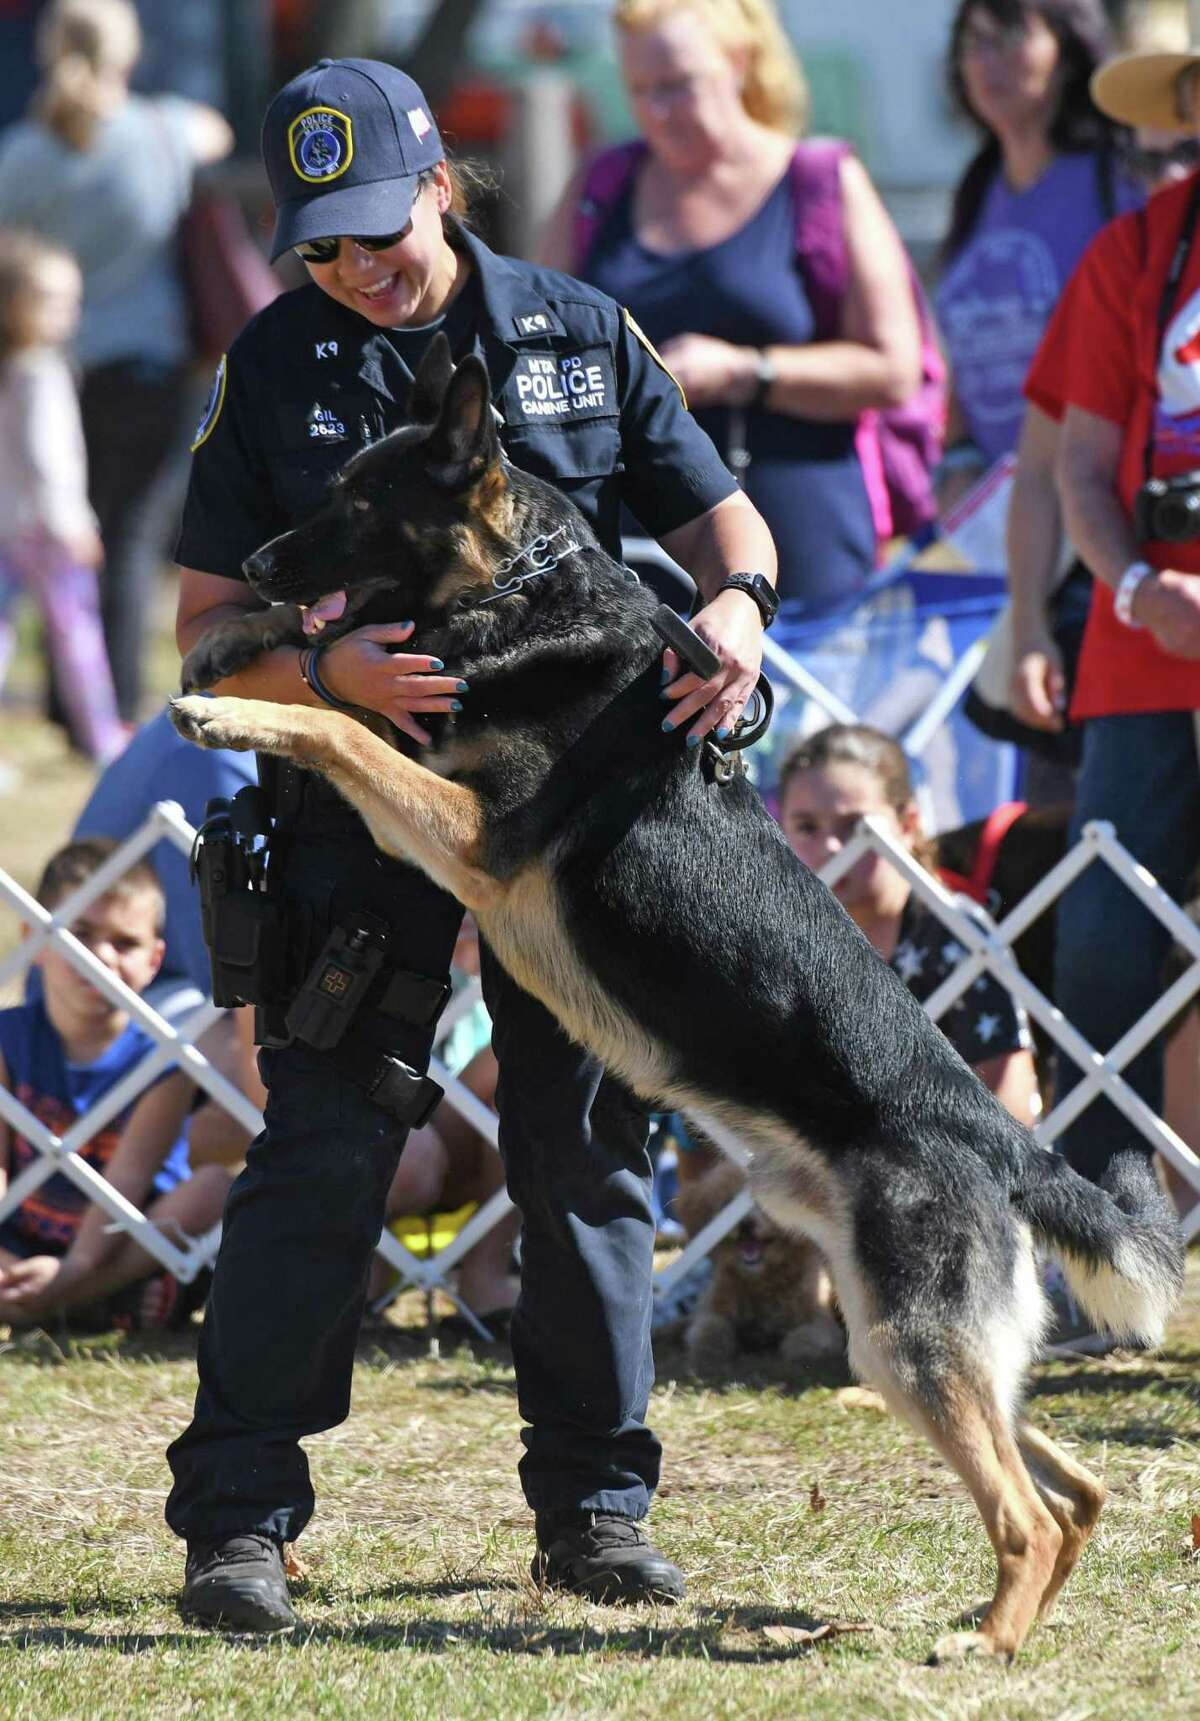 New York State Police Officer Gil puts on a demonstration with her K-9 Willy at Adopt-A-Dog's annual Puttin' on the Dog fundraising event at Roger Sherman Baldwin Park in Greenwich, Conn. Sunday, Sept. 29, 2019. Hundreds of humans and their canine companions enjoyed dog demonstrations and competitions, pet vendors on display, children's activities, food trucks and more.